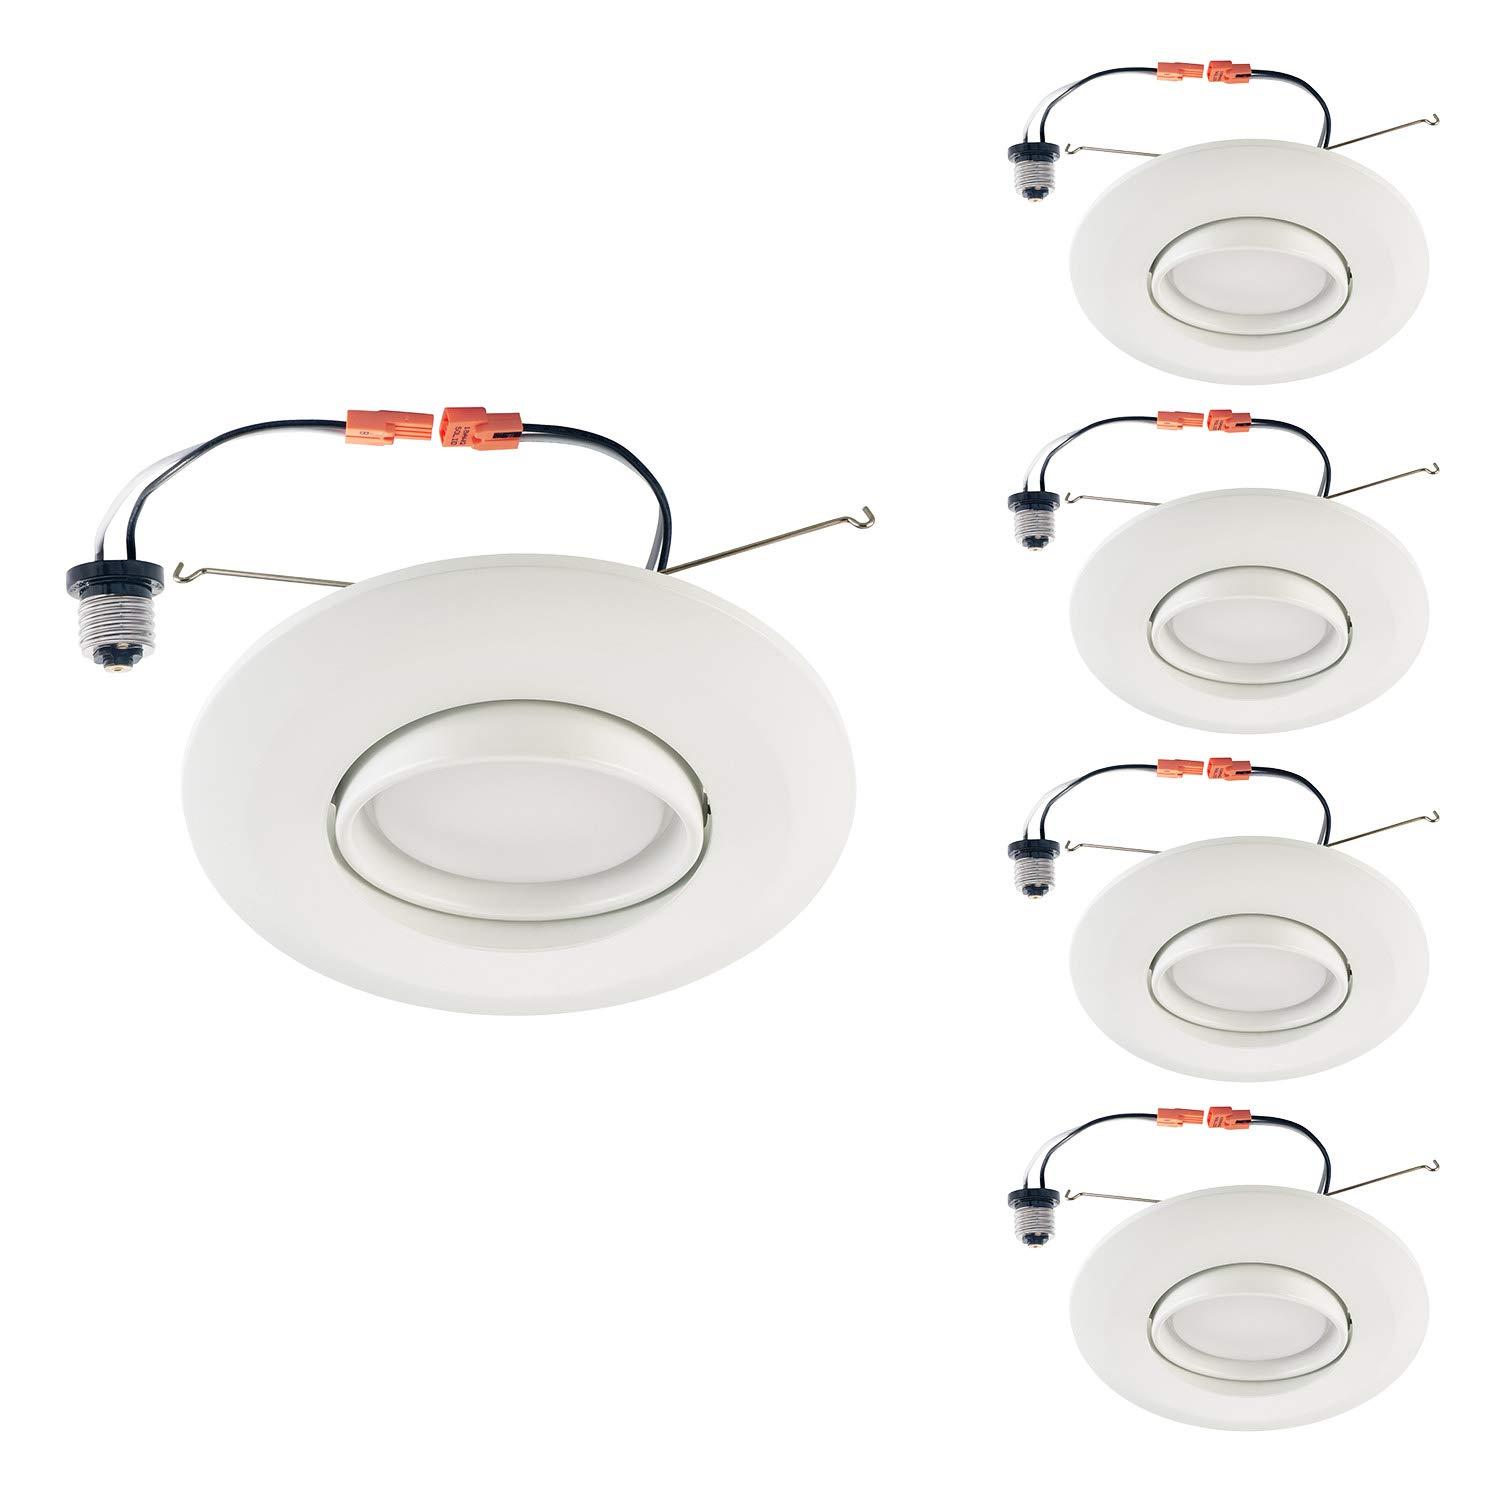 OSTWIN (4 Pack) 6 Inch Adjustable LED Gimbal Downlight, Retrofit Gimbal Ceiling Lighting Fixture Dimmable Recessed Mount, 15 W (120 Watt Replacement), 1250 Lm, 4000K Bright Light, ETL & Energy Star